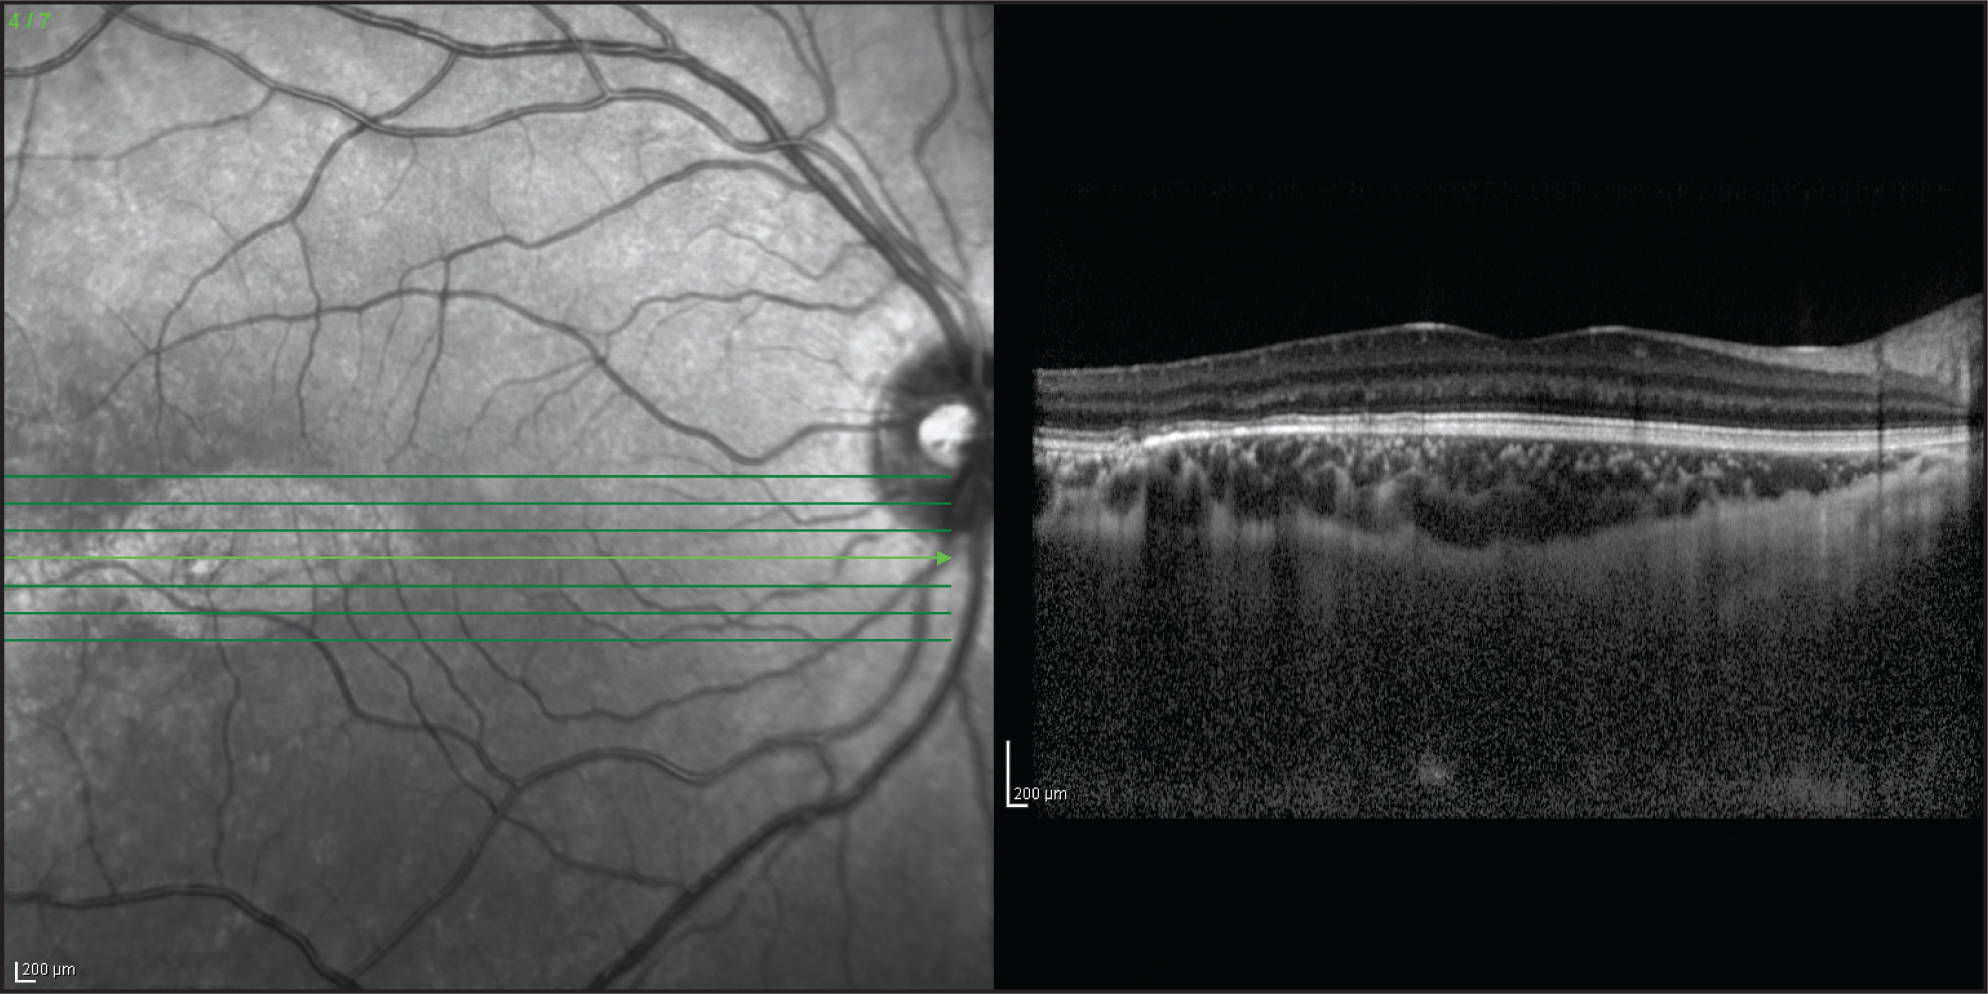 Spectral-domain optical coherence tomography. Note thinning of retina and retinal pigment epithelium, as well as increased choroidal reflectivity temporal to the center of the macula.